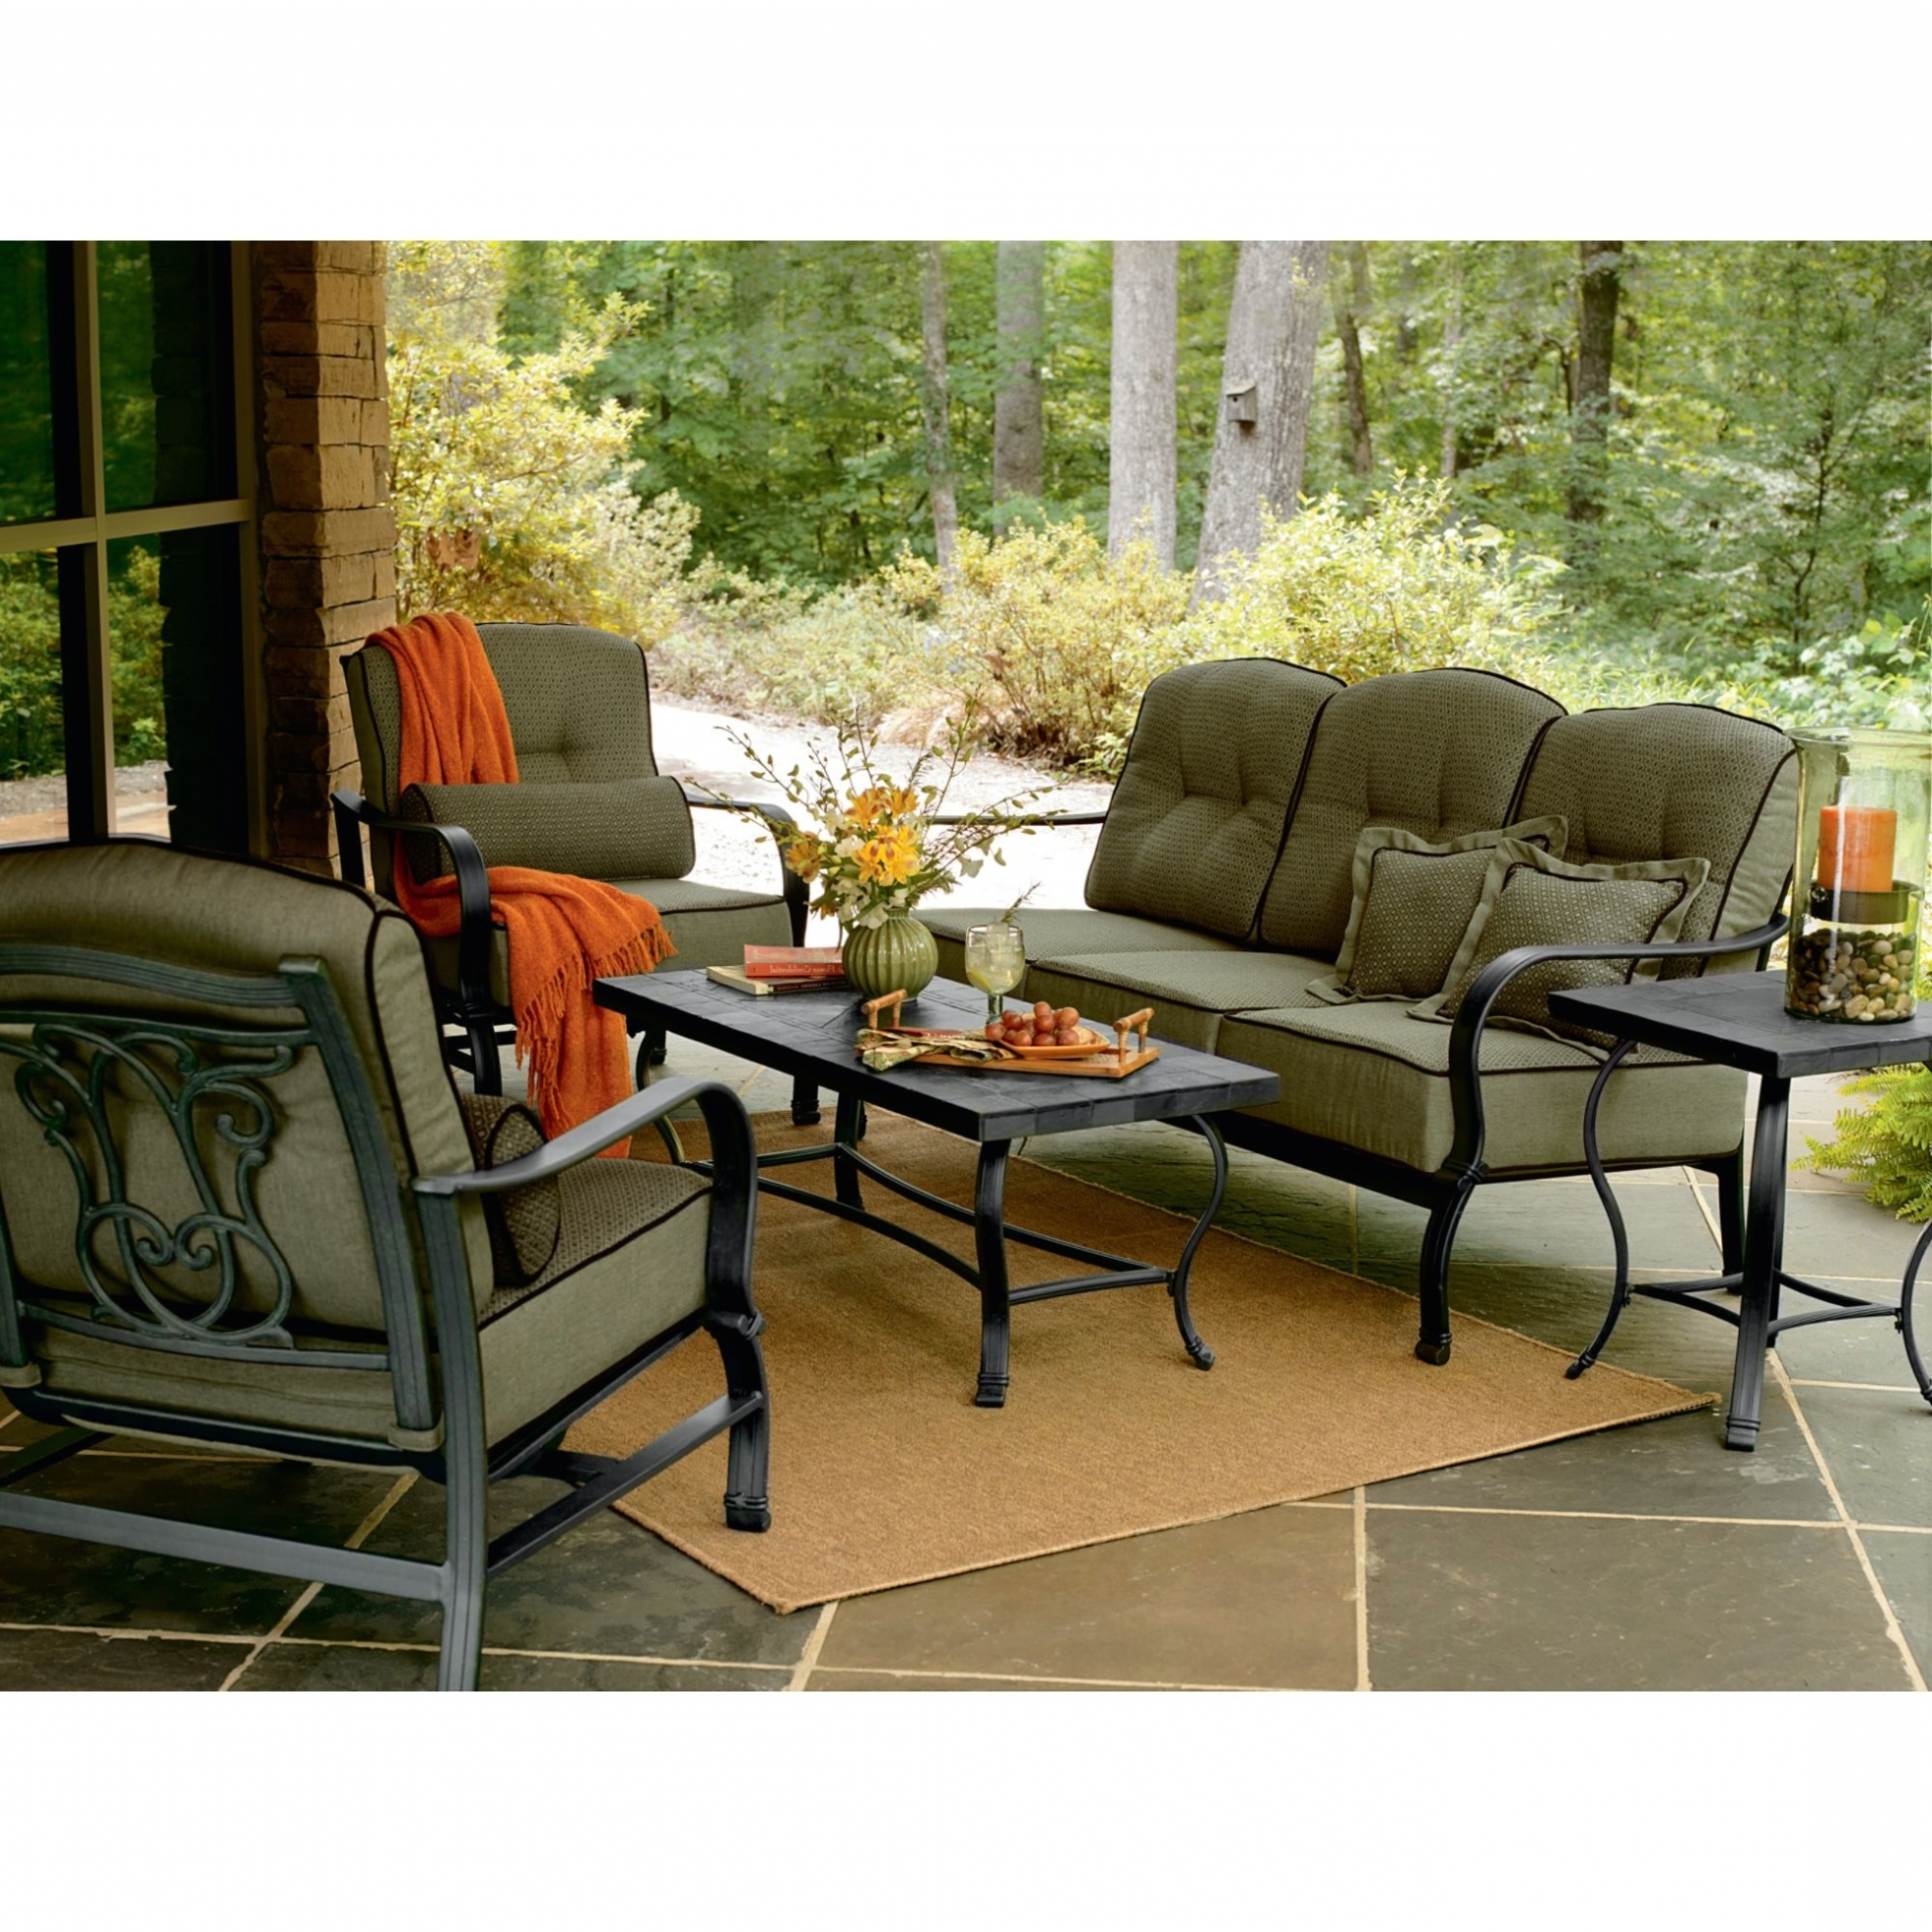 Most Recently Released Lazy Boy Outdoor Furniture – Furniture Ideas Pertaining To Lazy Boy Patio Conversation Sets (View 2 of 15)